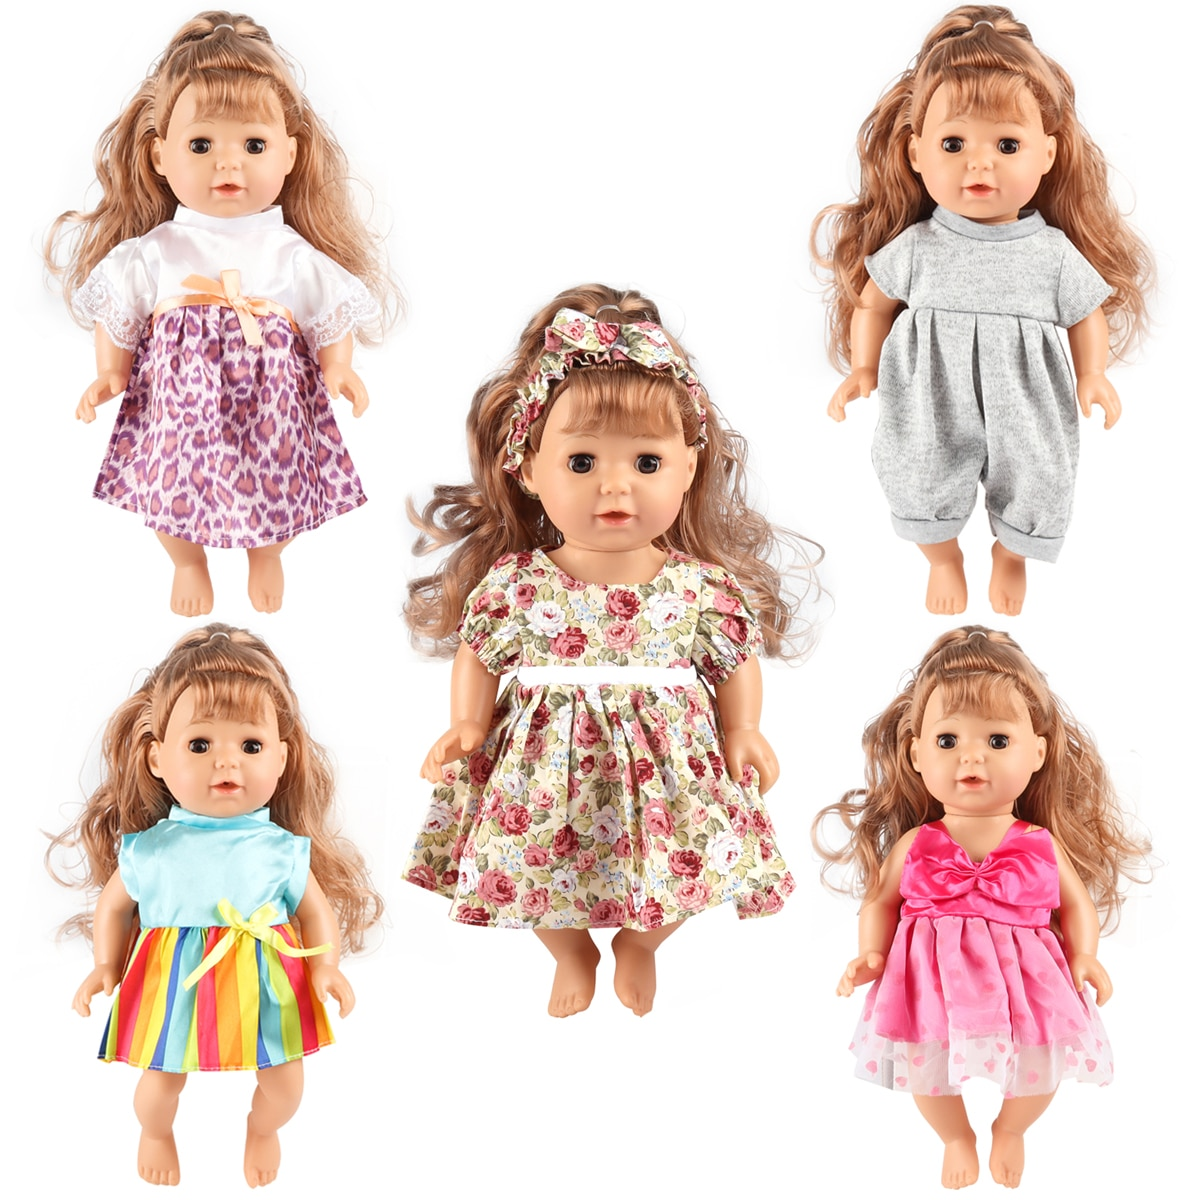 Doll Clothes For 13-14-15 Inch Baby Born Doll Clothing, Baby Doll Clothes Dress Oufit Handmade Girl